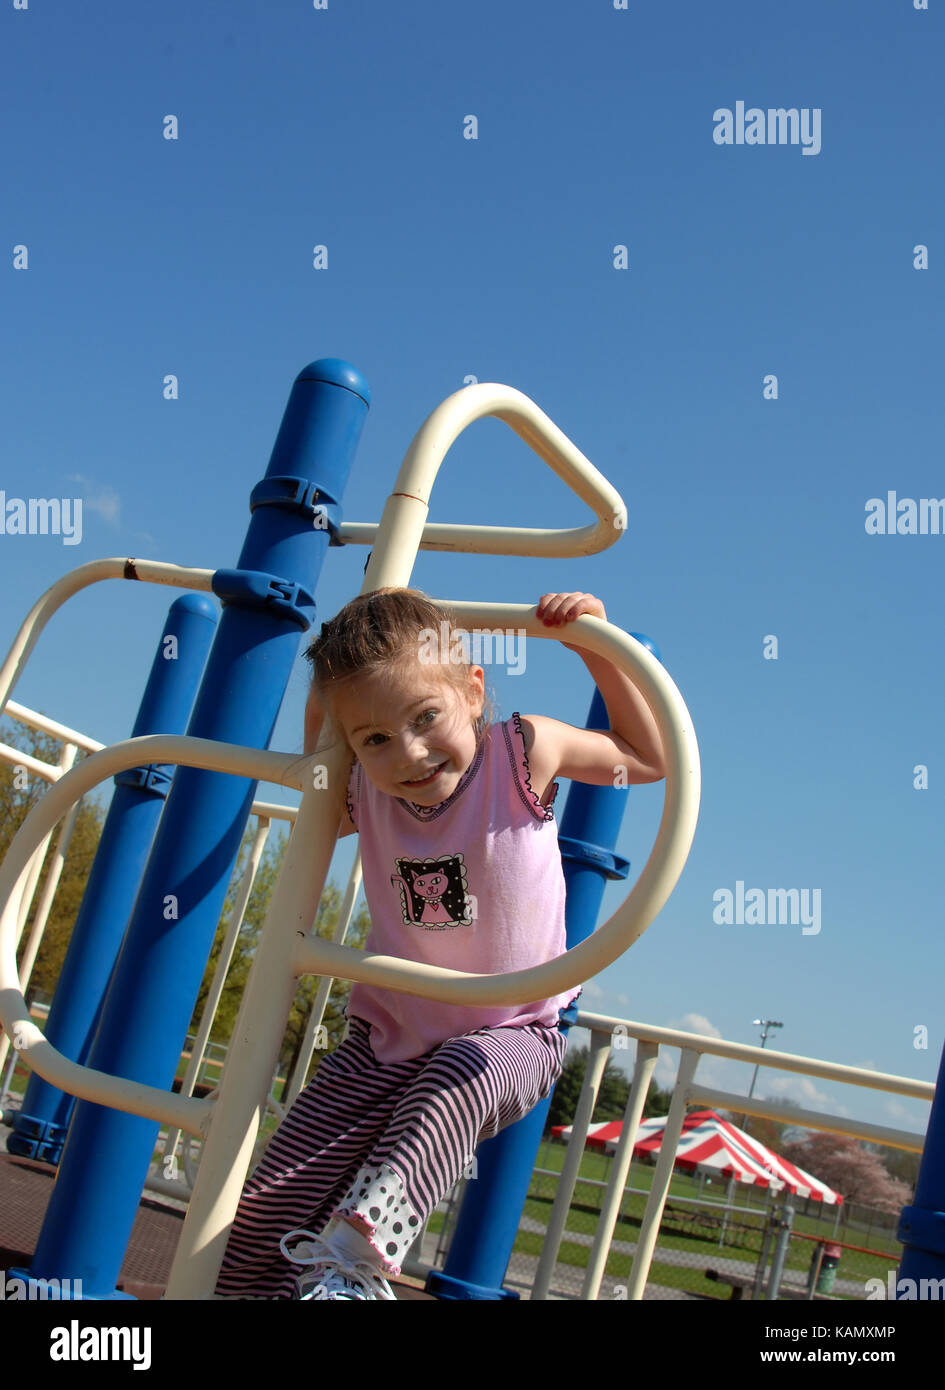 Little girl climbs through a metal hoop on playground equipment.  She is smiling and happy.  Equipment is blue and Stock Photo